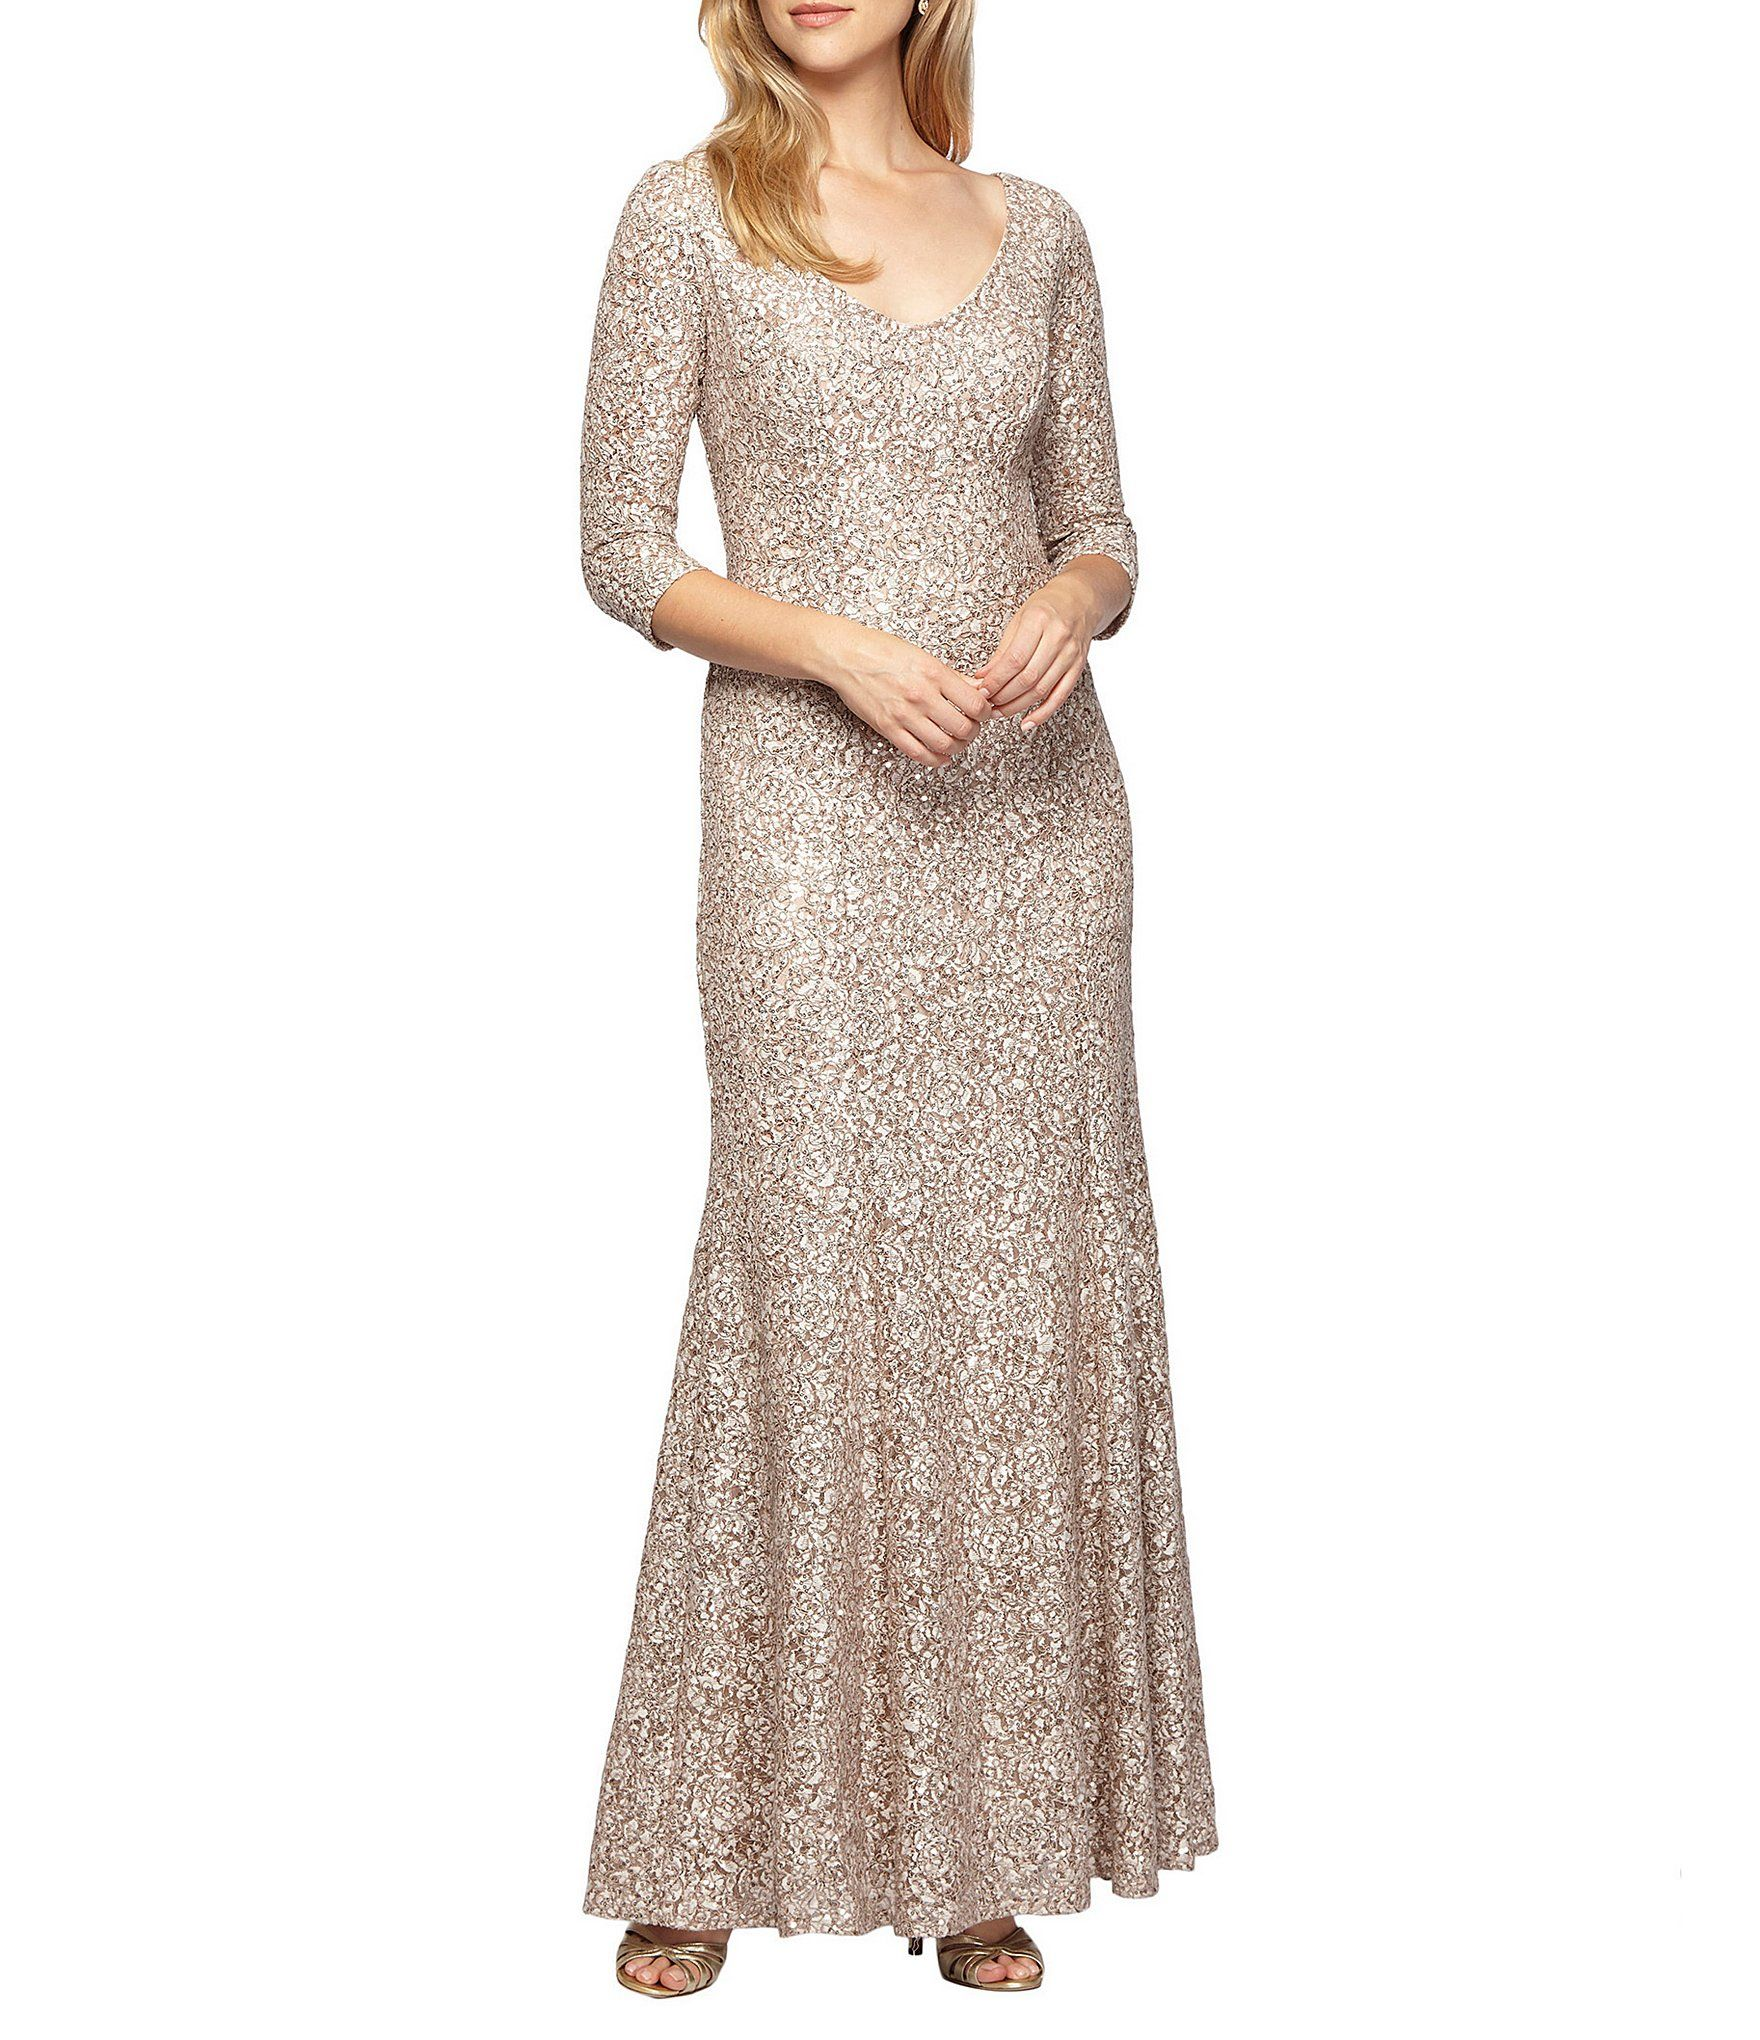 Alex Evenings Sequined Lace 34 Sleeve Gown Dillards Evening Gowns With Sleeves Gowns A Line Gown [ 2040 x 1760 Pixel ]